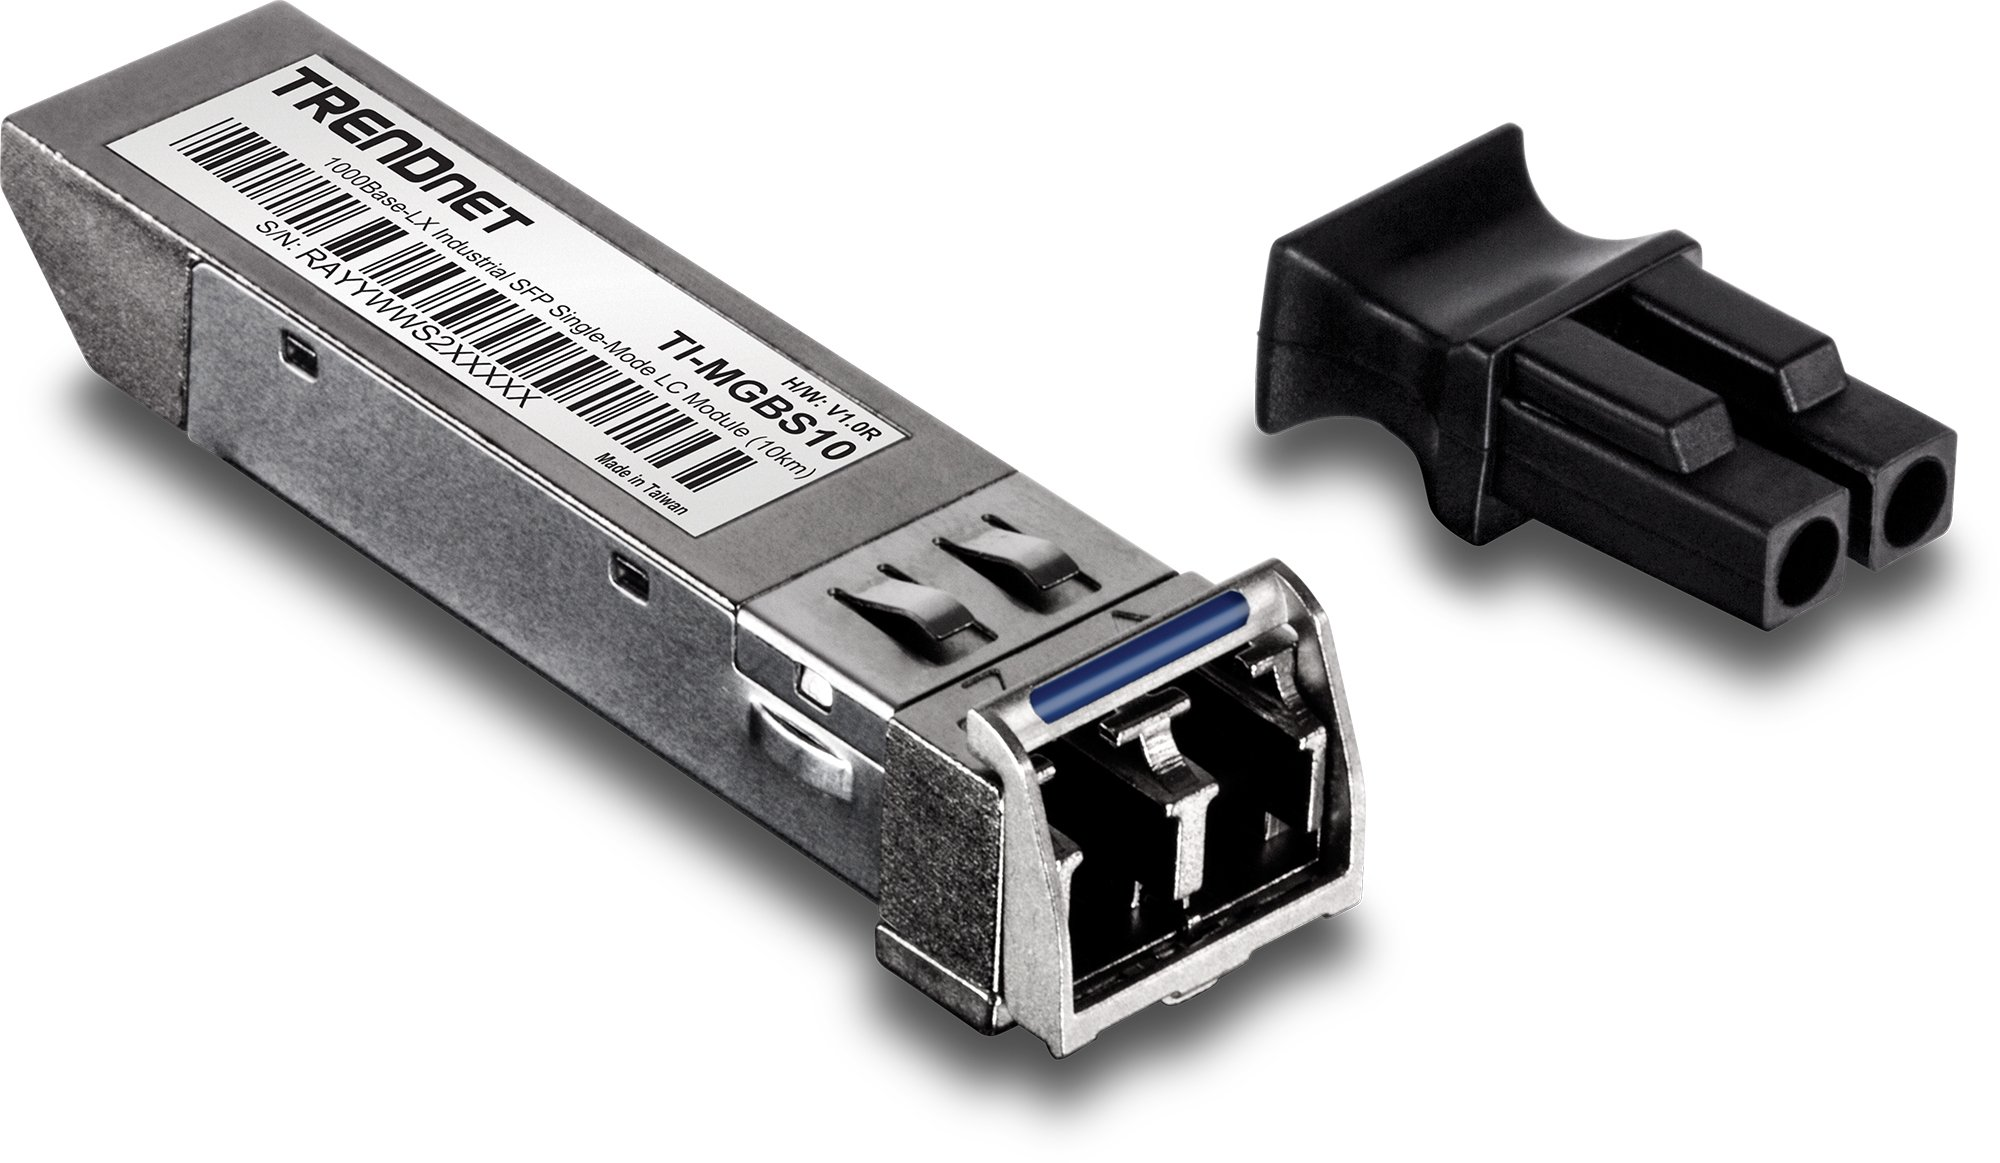 TRENDnet 1000Base-LX Industrial SFP Single-Mode LC Module (10km-6.2 Miles), IEEE 802.3z, ANSI, MSA Compliant, Data Rates up to 1.25 Gbps, Hot-Pluggable, LC-Type Duplex, TI-MGBS10